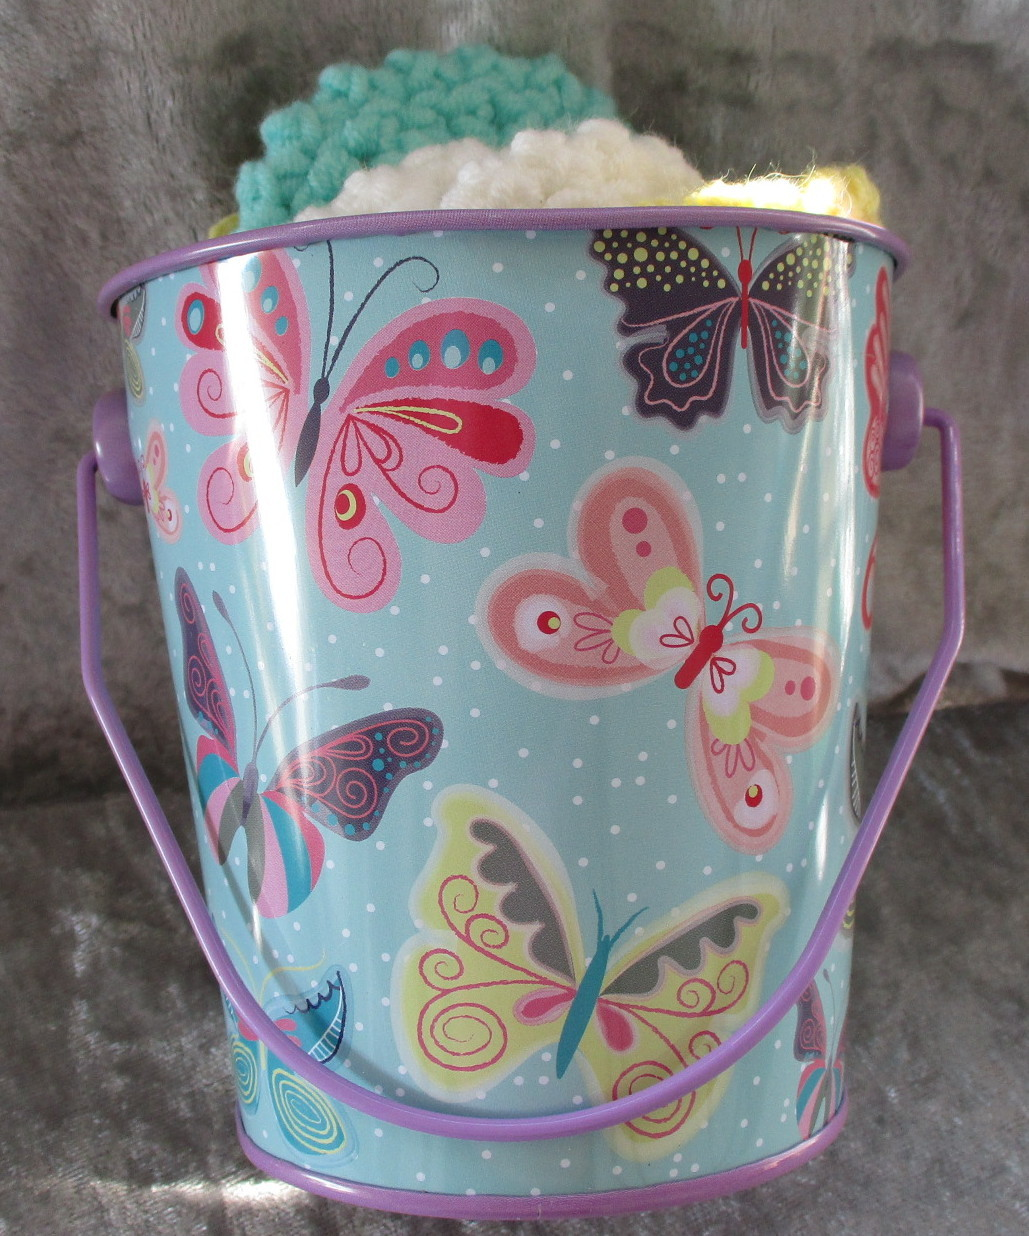 Bucket of Hand Crafted Facial Scrubbie Make Up Removers